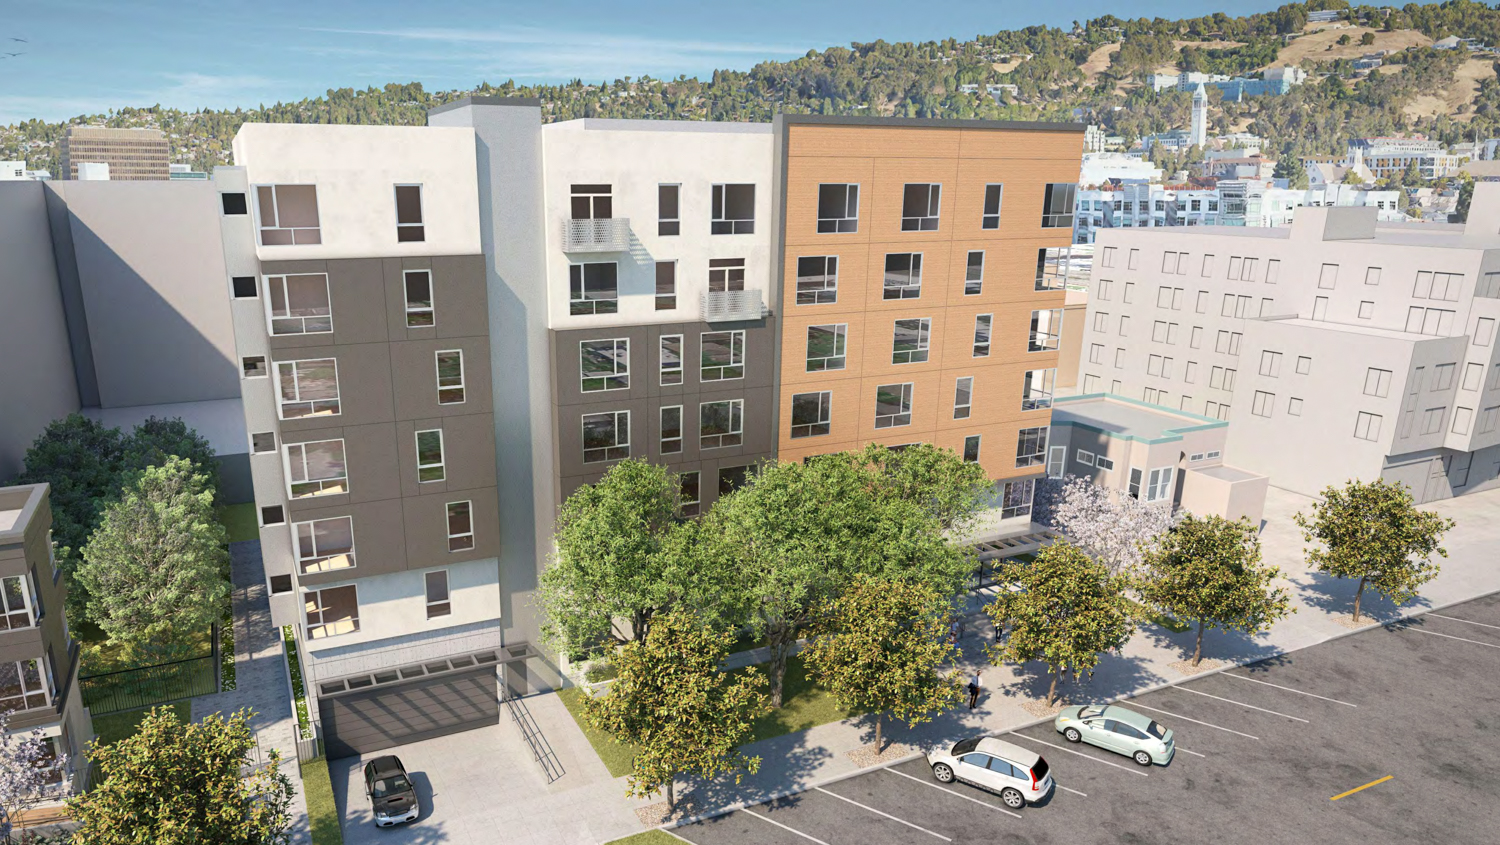 2015 Blake Street rear aerial perspective, rendering courtesy Lowney Architects